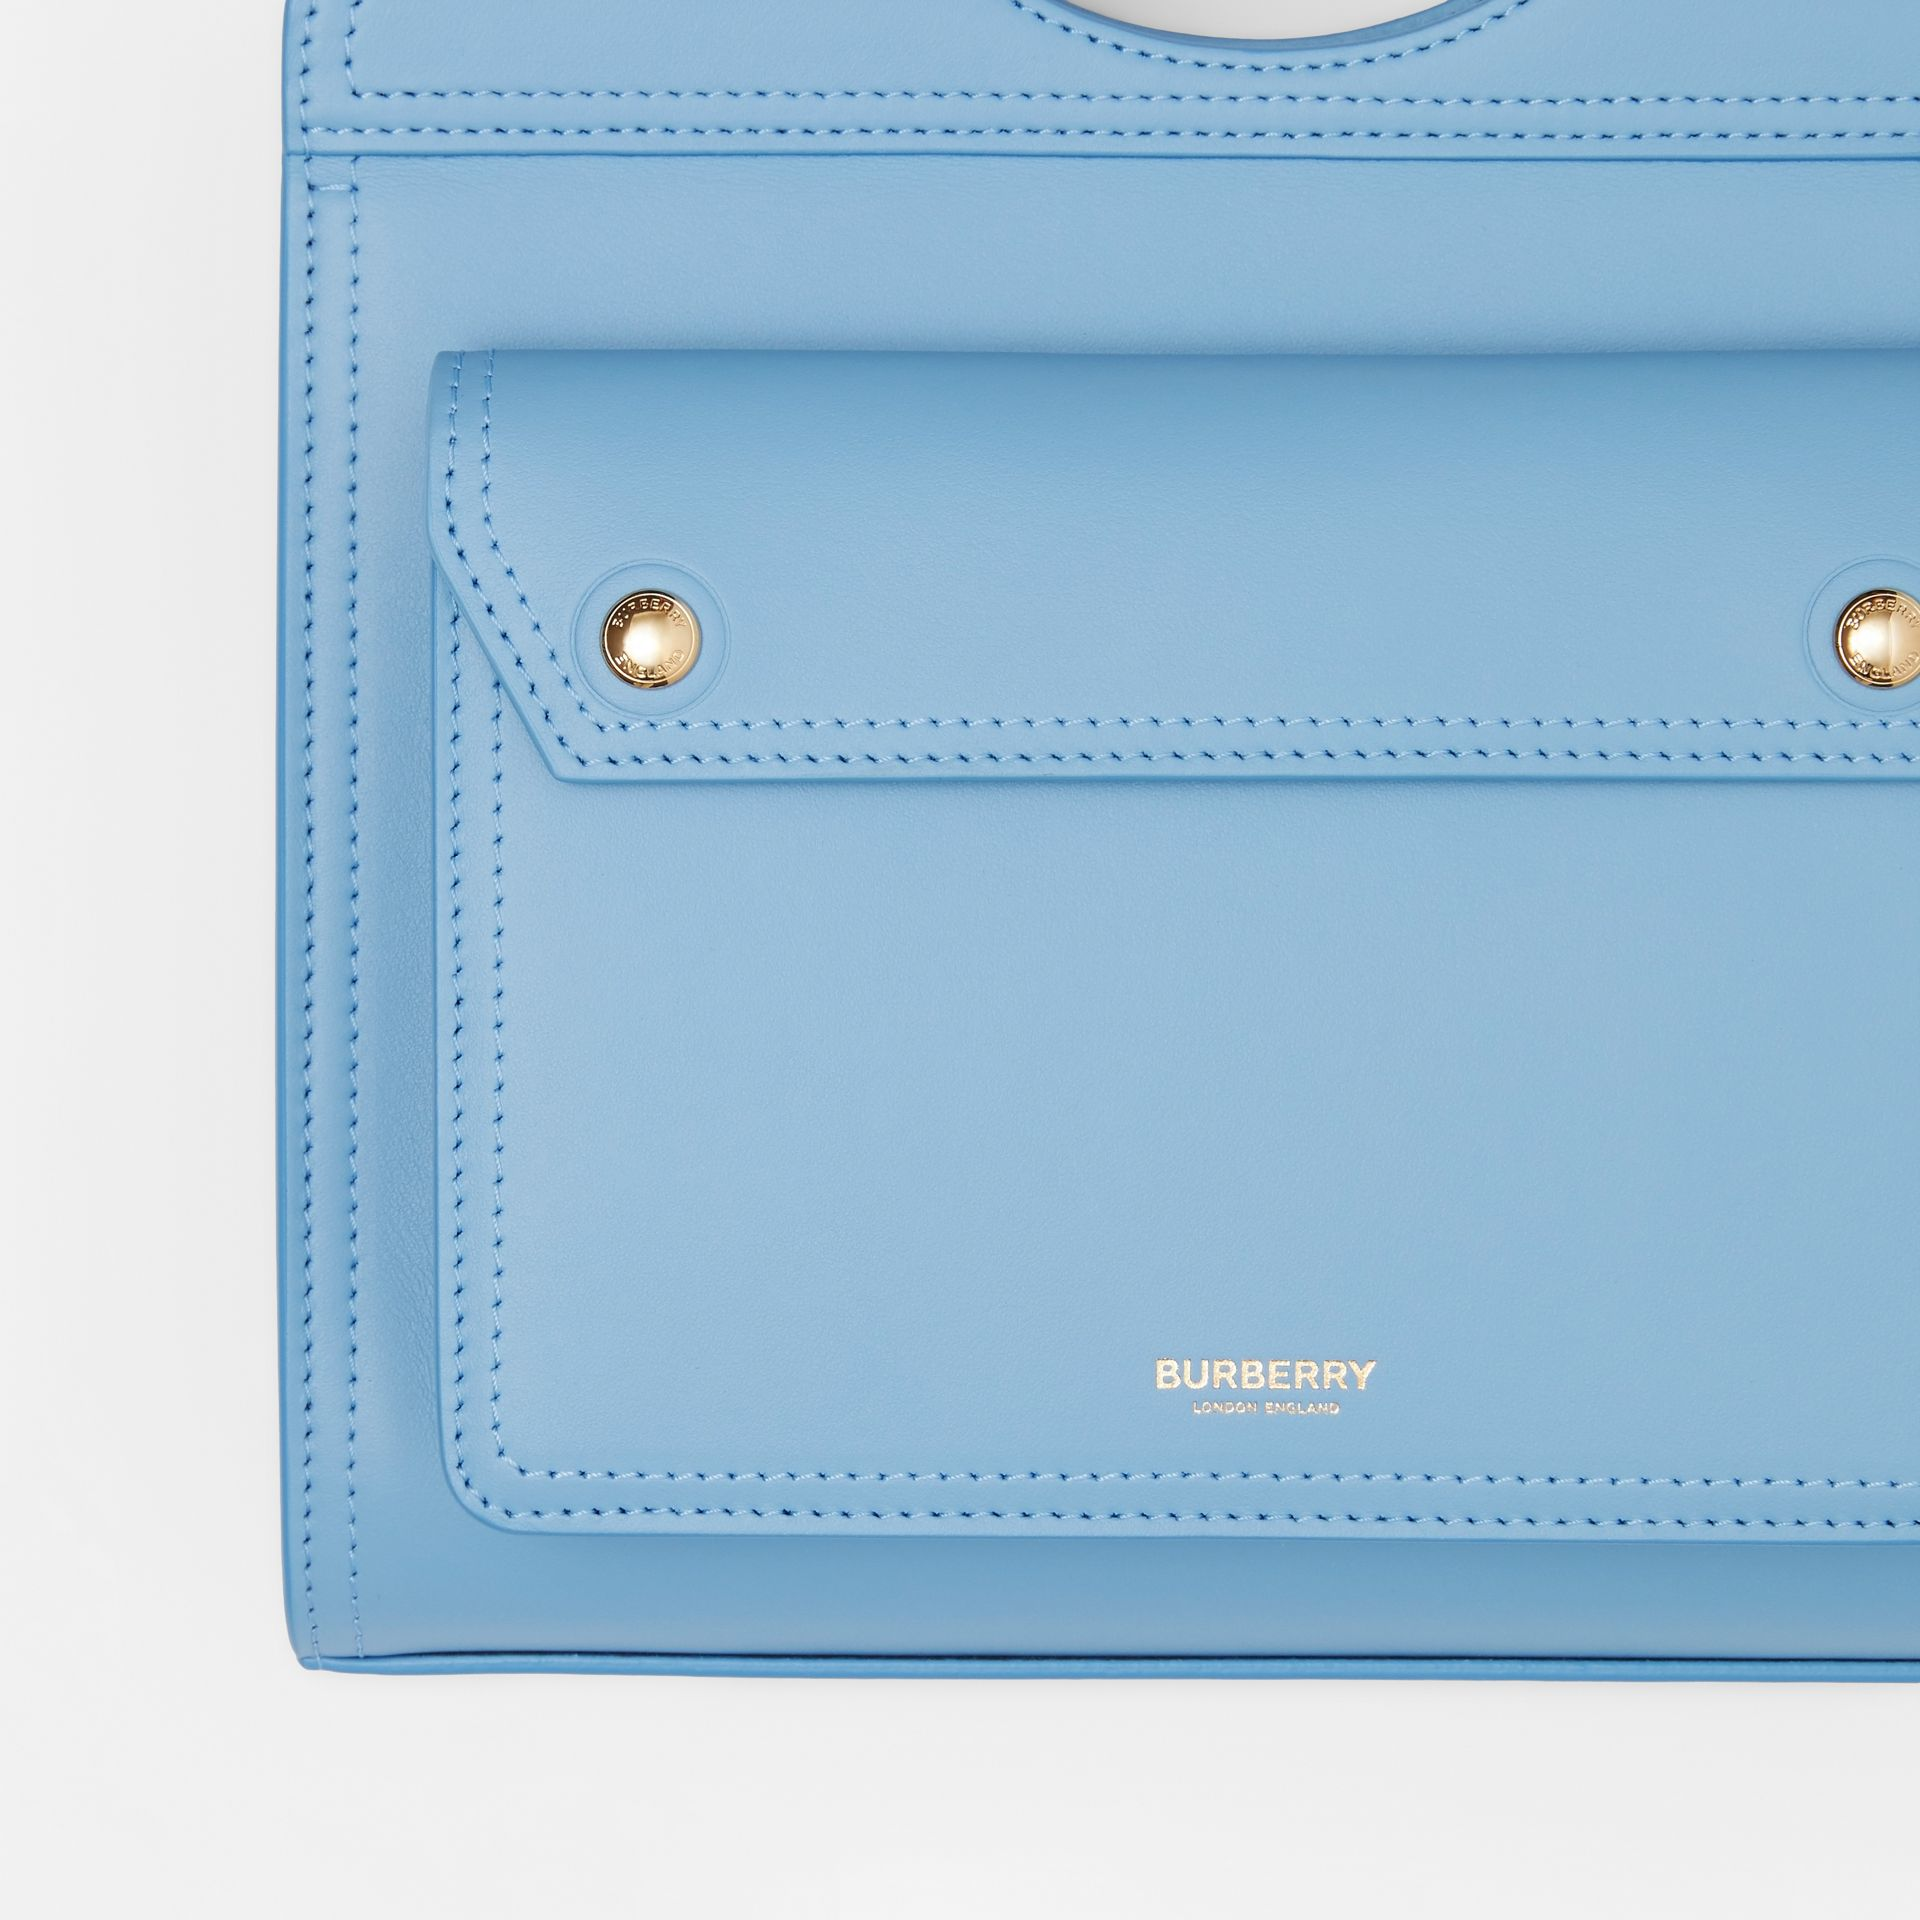 Mini Leather Pocket Bag in Blue Topaz - Women | Burberry - gallery image 1